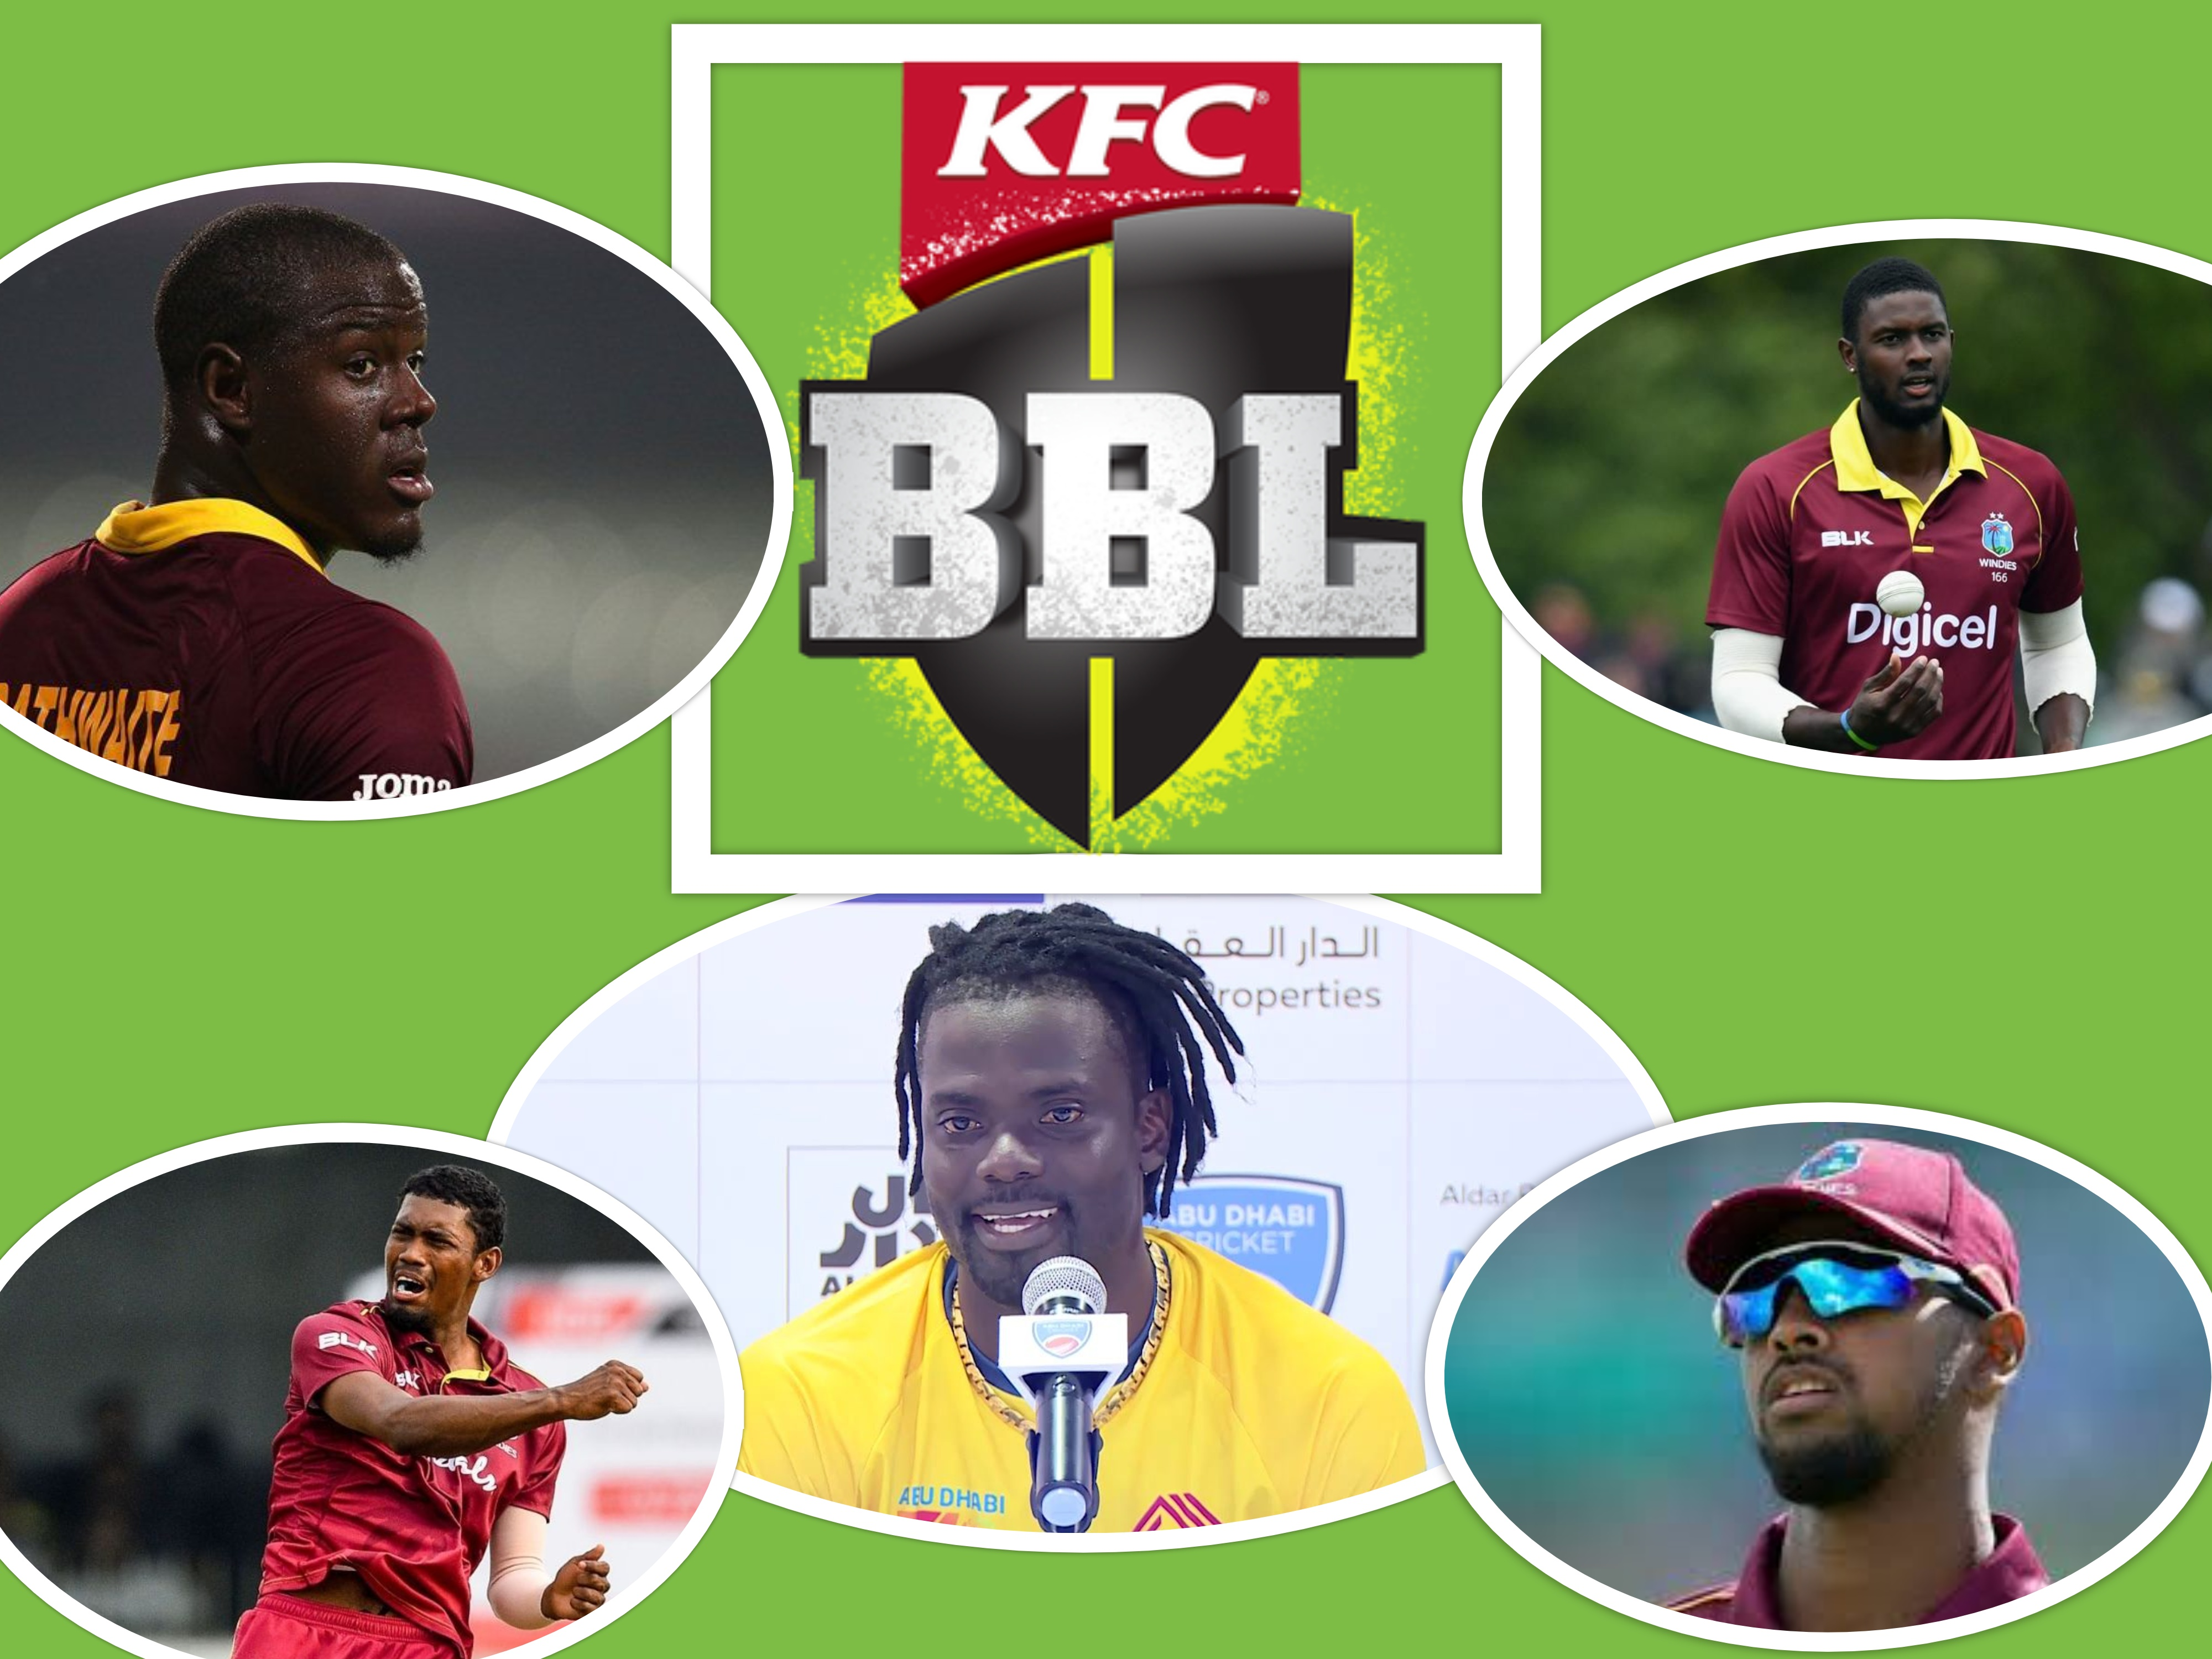 West Indian Players in Big Bash League 2020-21